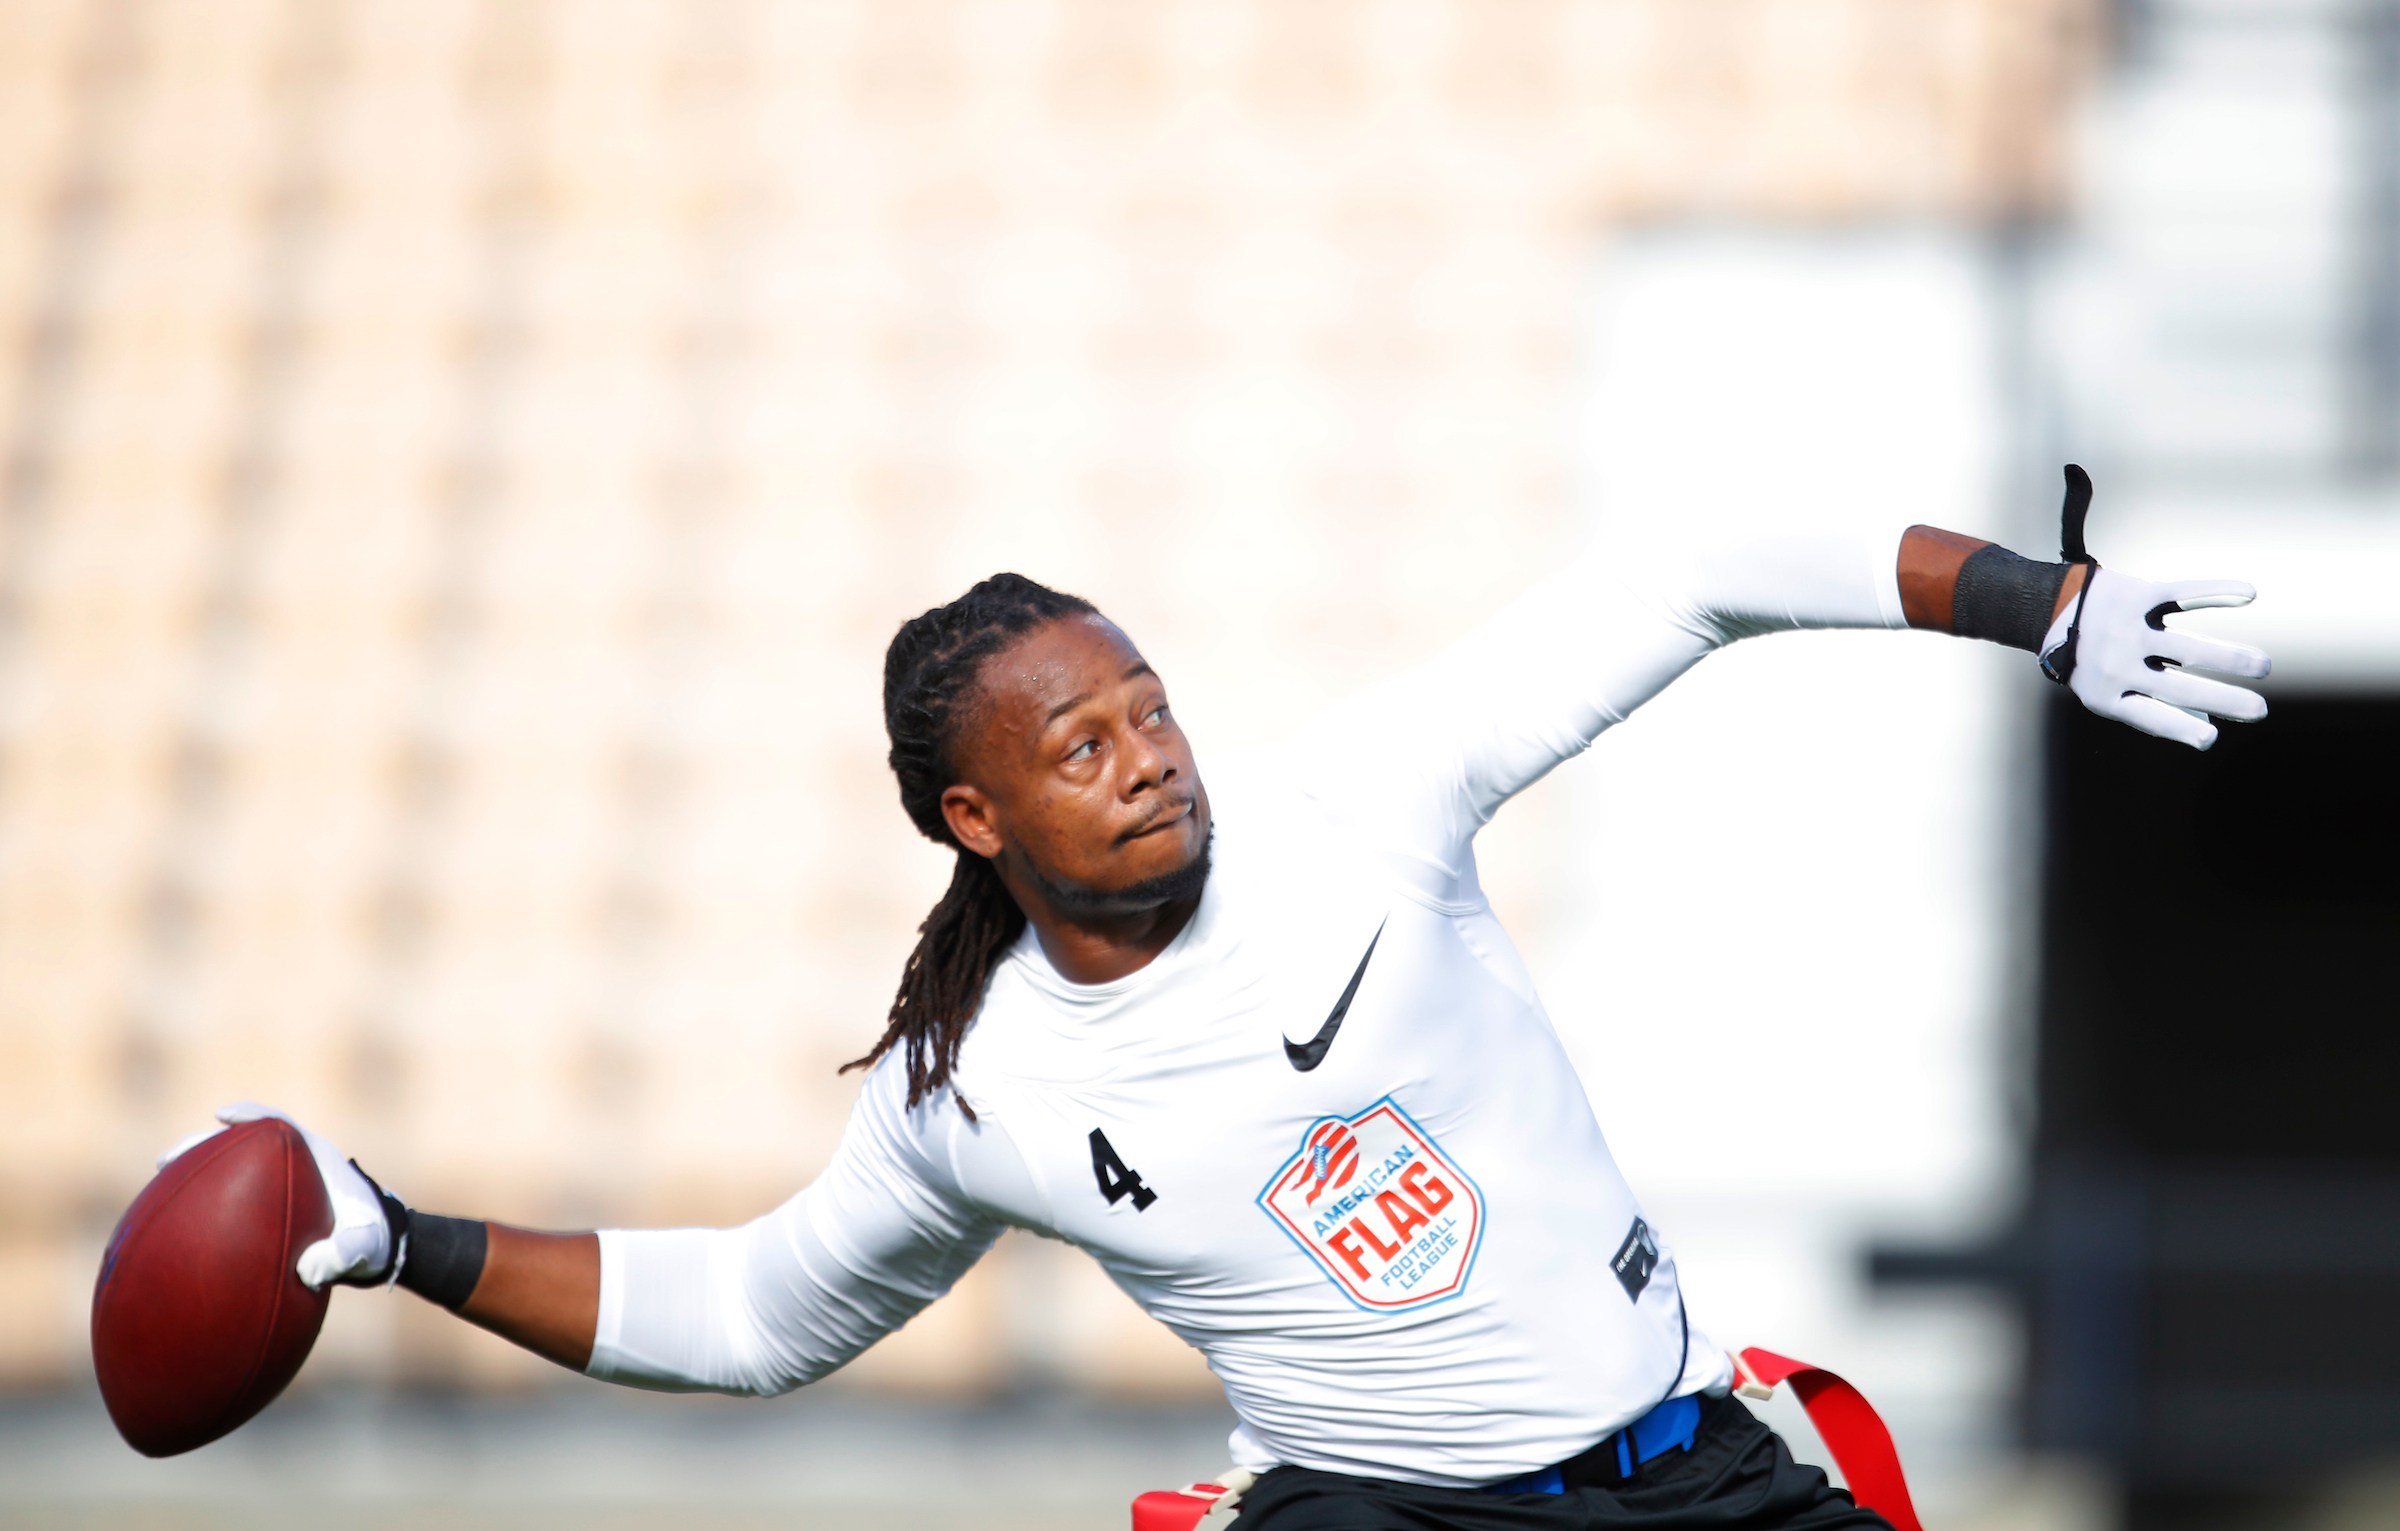 Fighting Cancer's Darius Davis warms up prior to before the semifinal round of the American Flag Football League (AFFL) U.S. Open of Football tournament, Saturday, July 7, 2018 in Kennesaw, Ga. (Todd Kirkland/AP Images for American Flag Football League)